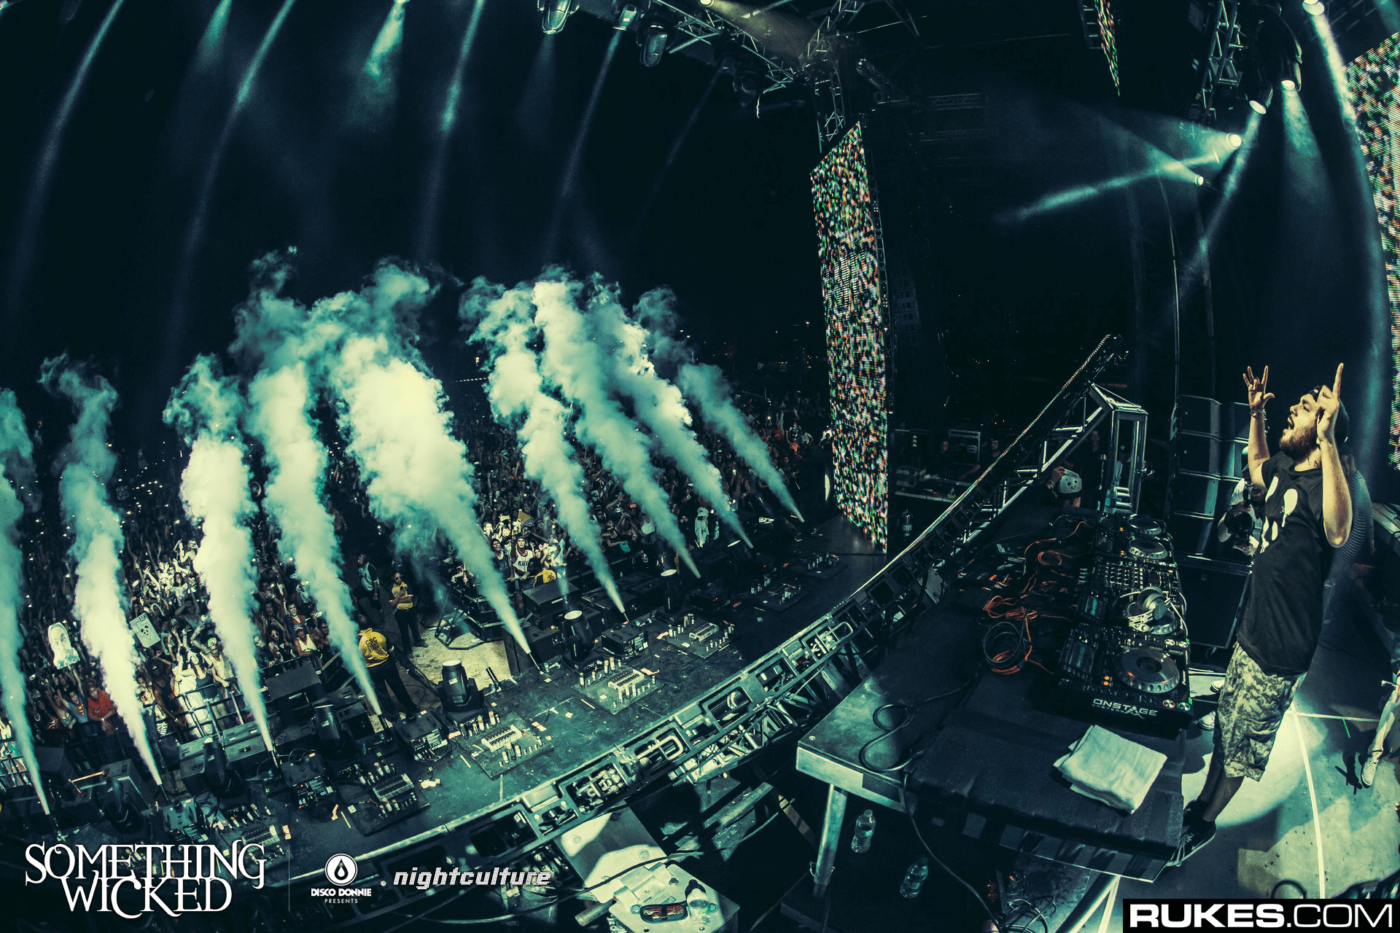 deorro stage in smoke at something wicked